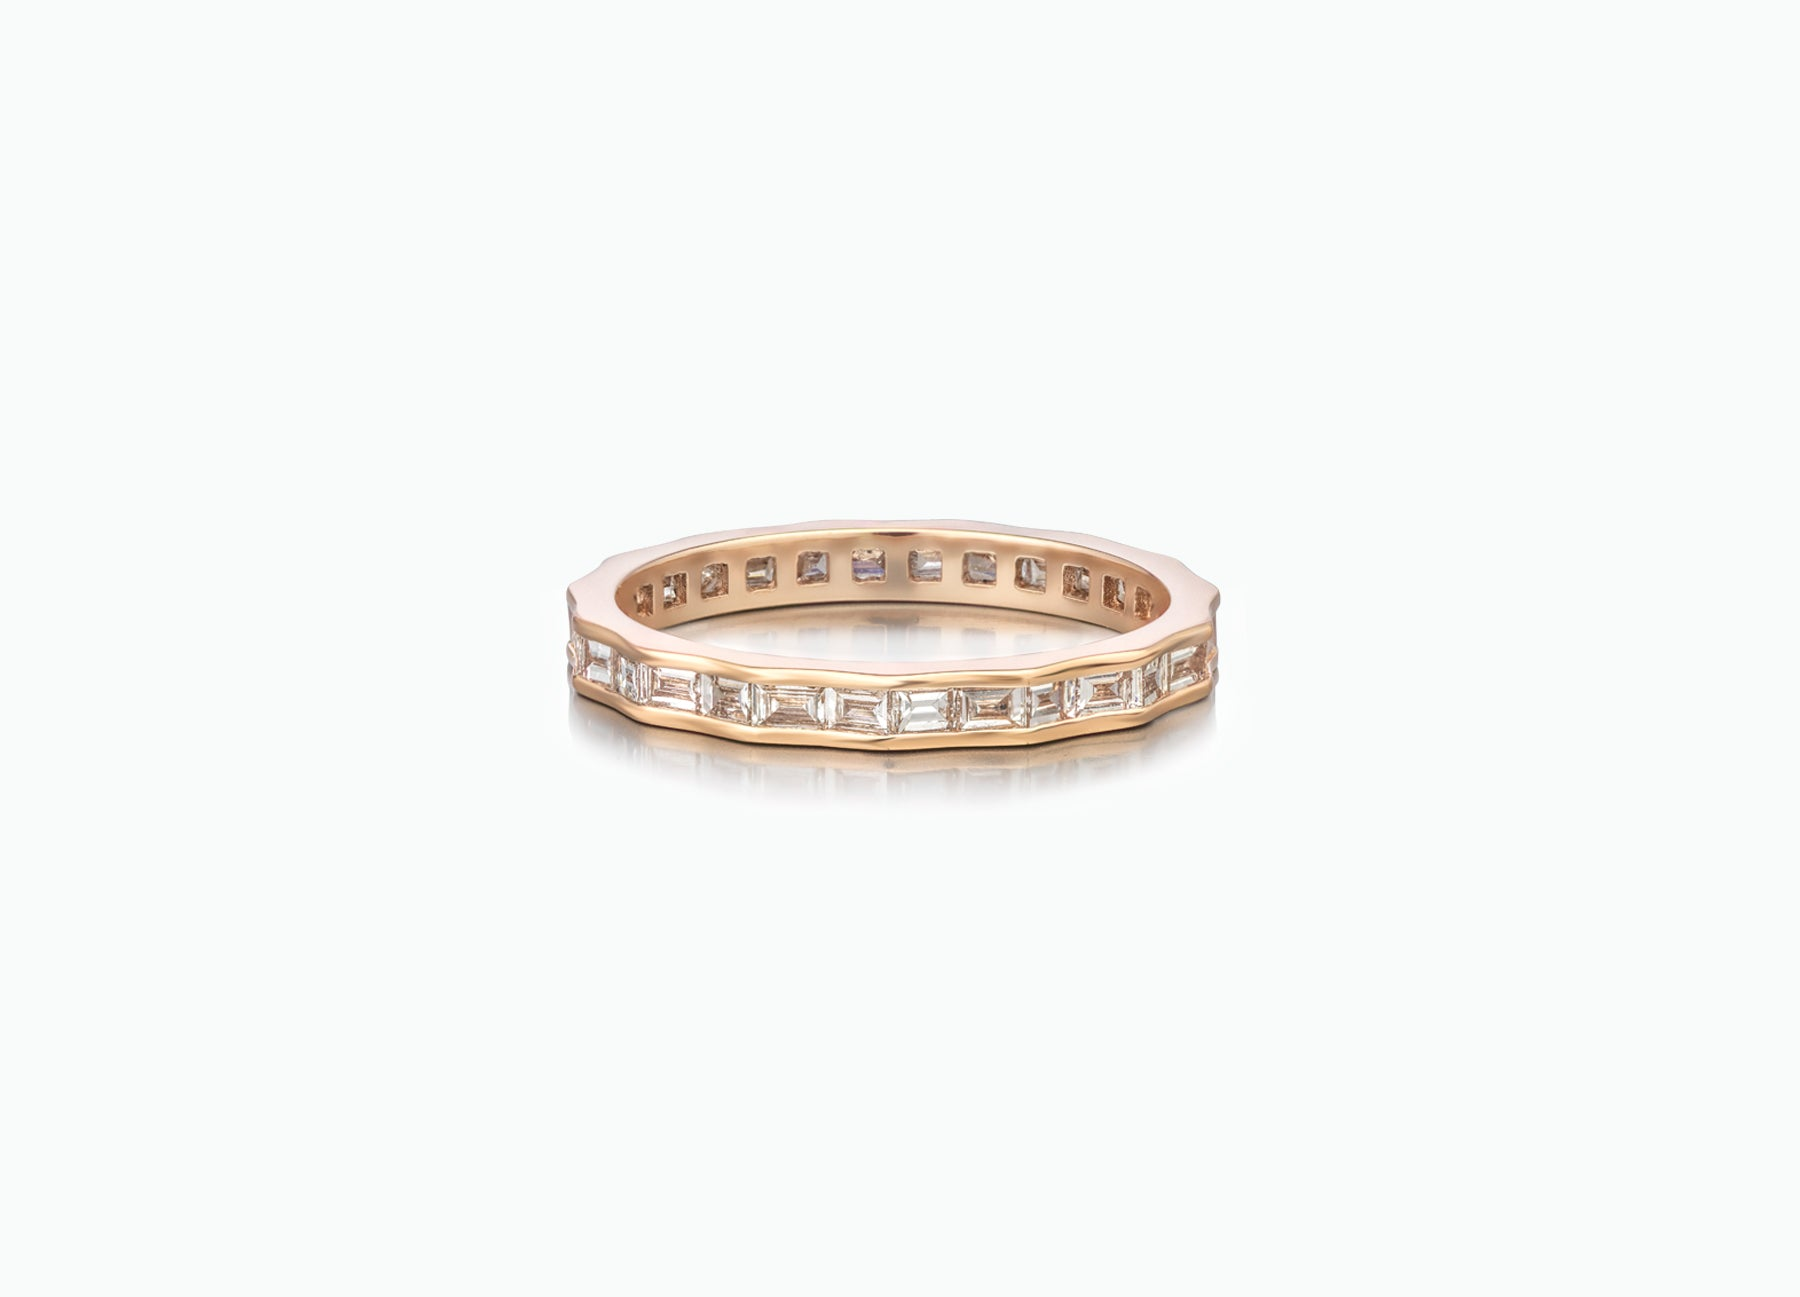 Contemporary Pleat Eternity Wedding Band by Tomasz Donocik set with baguette diamonds all around by Tomasz Donocik front view